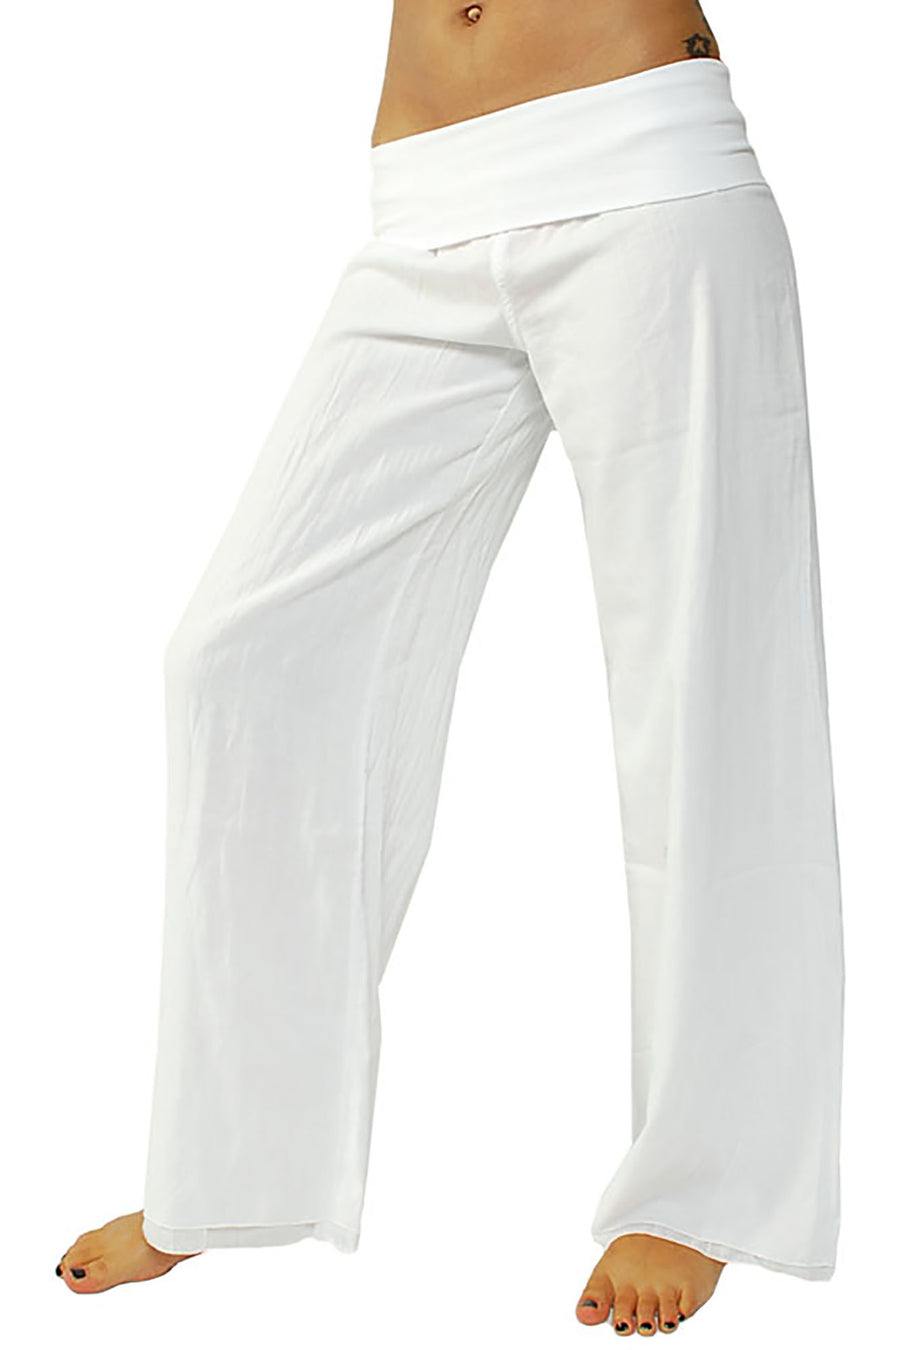 Double Dry Voile Pant (Style VL-29, White) by Hard Tail Forever